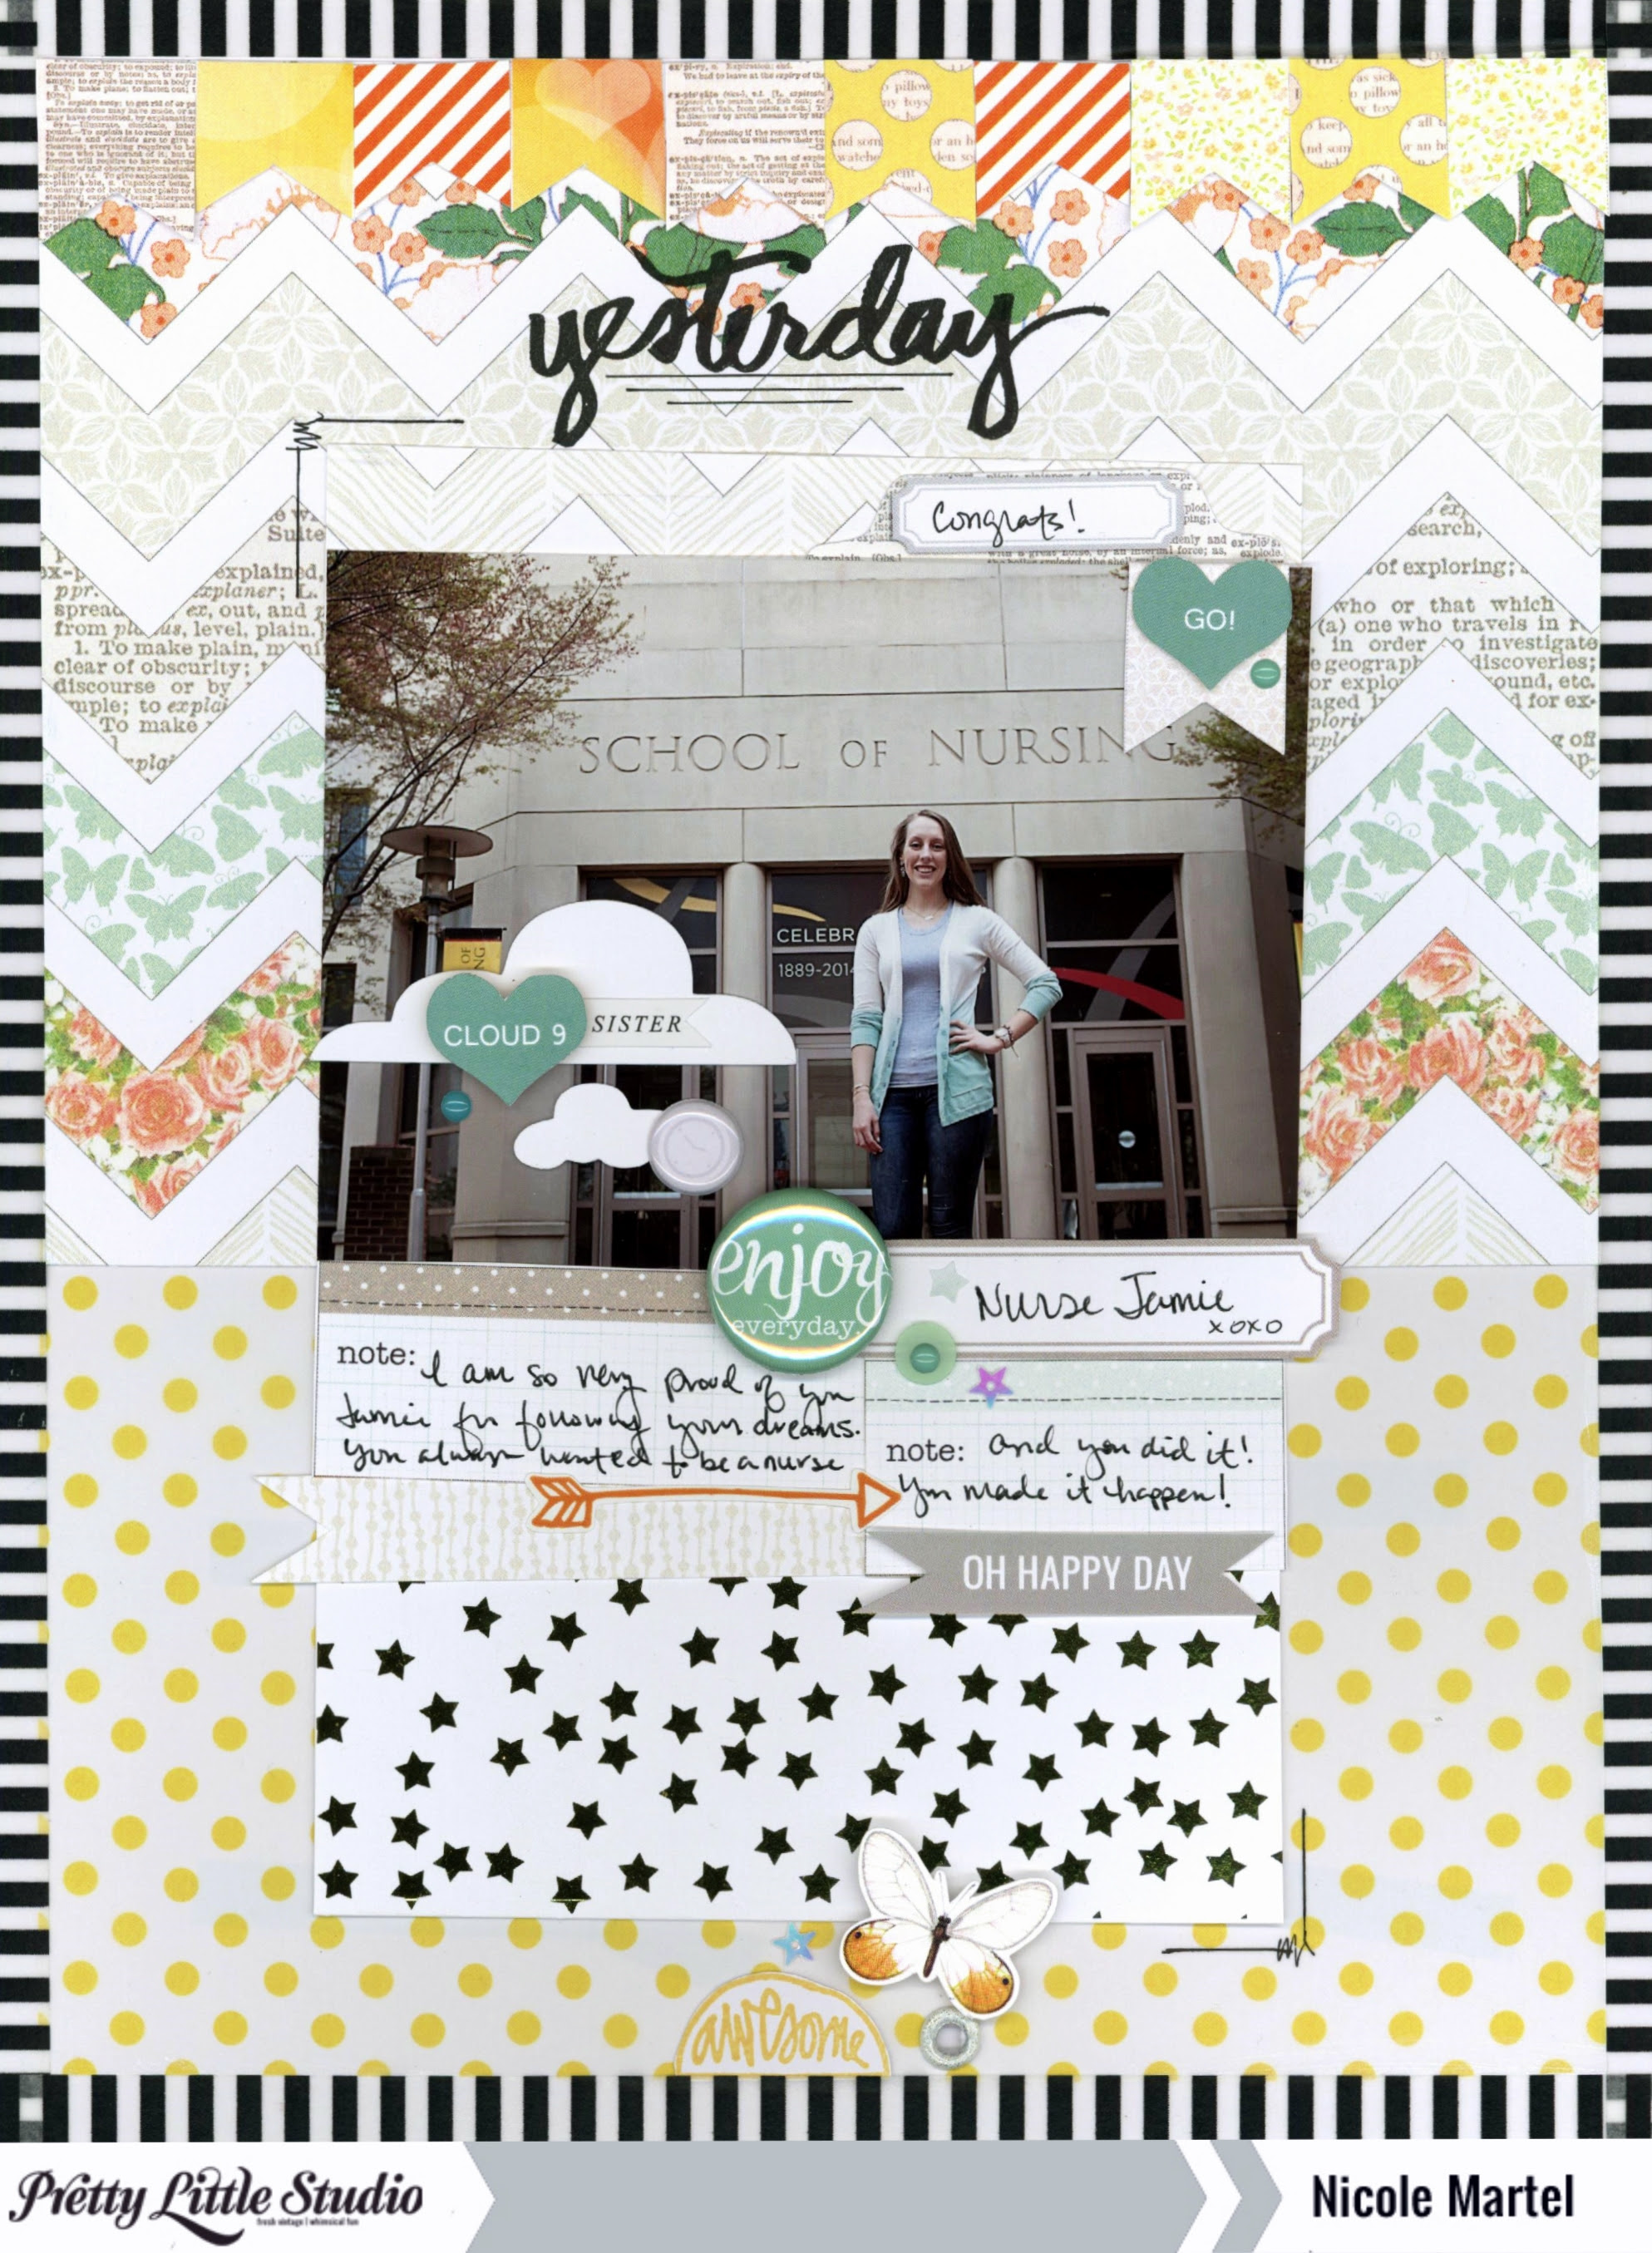 yesterday_nicole martel_Pretty Little Studio_layout